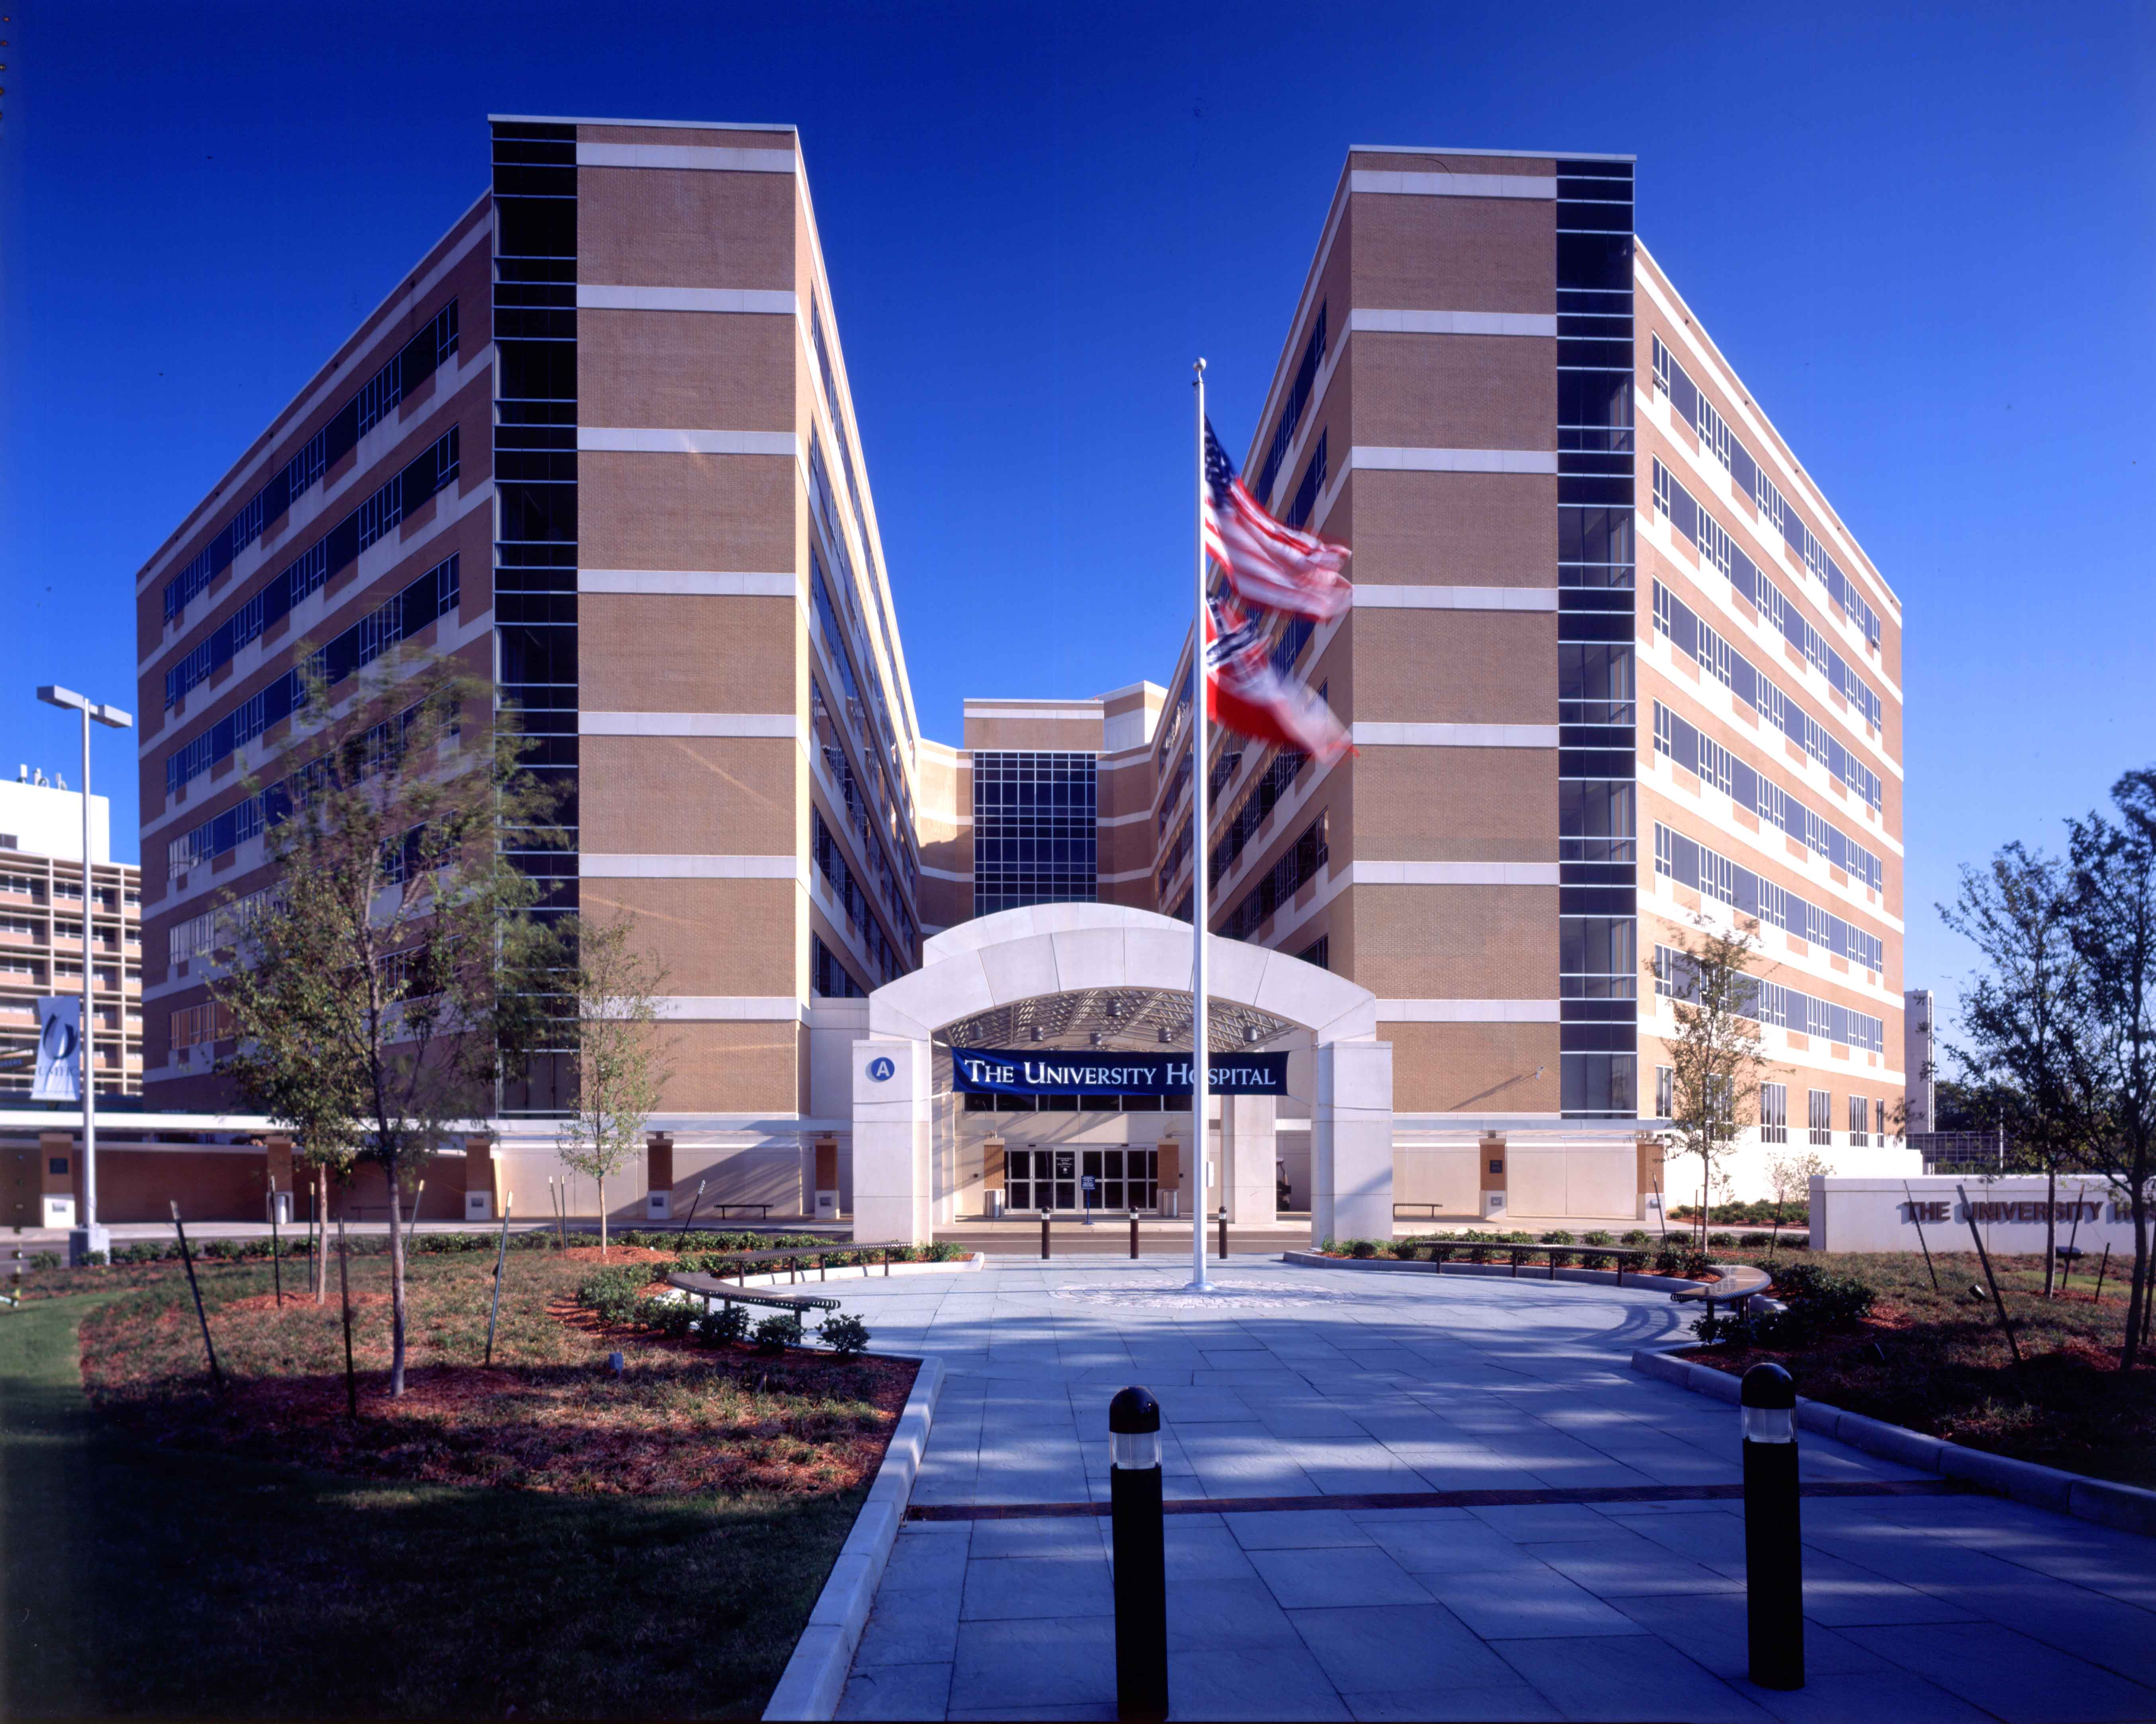 University Hospital Adult Tower